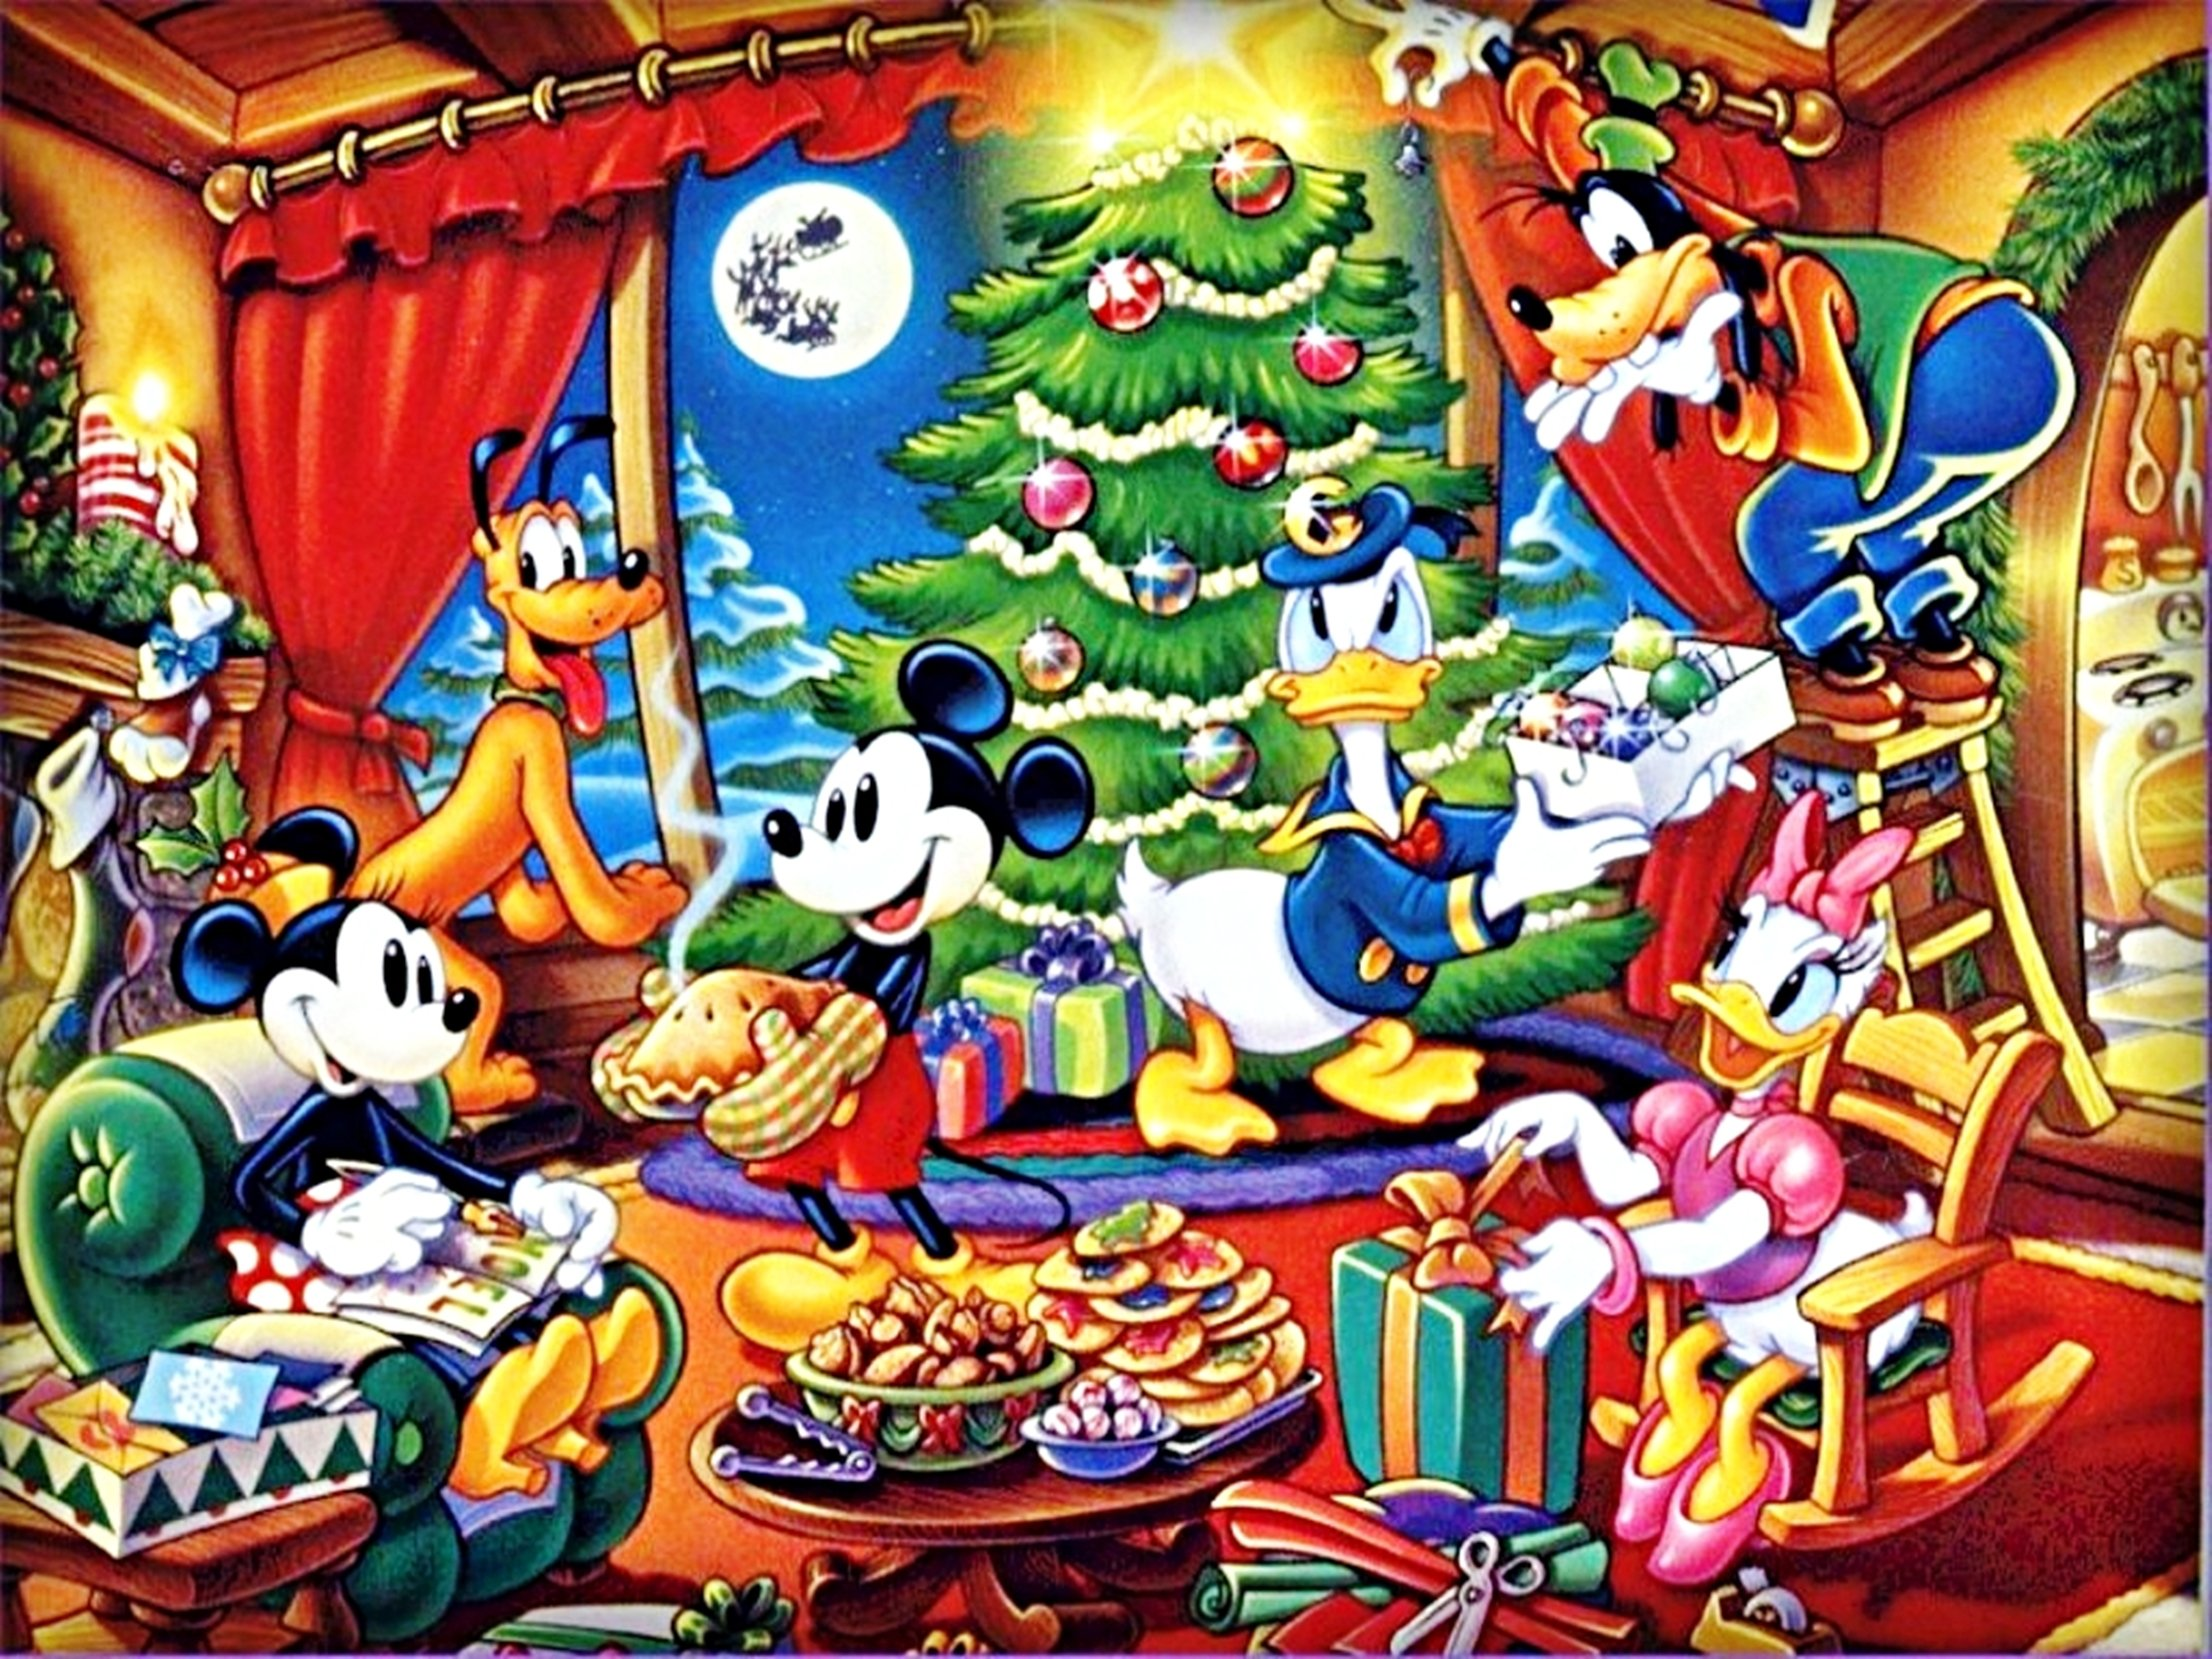 Walt Disney Wallpapers The Disney Gang Christmas walt disney 2212x1659